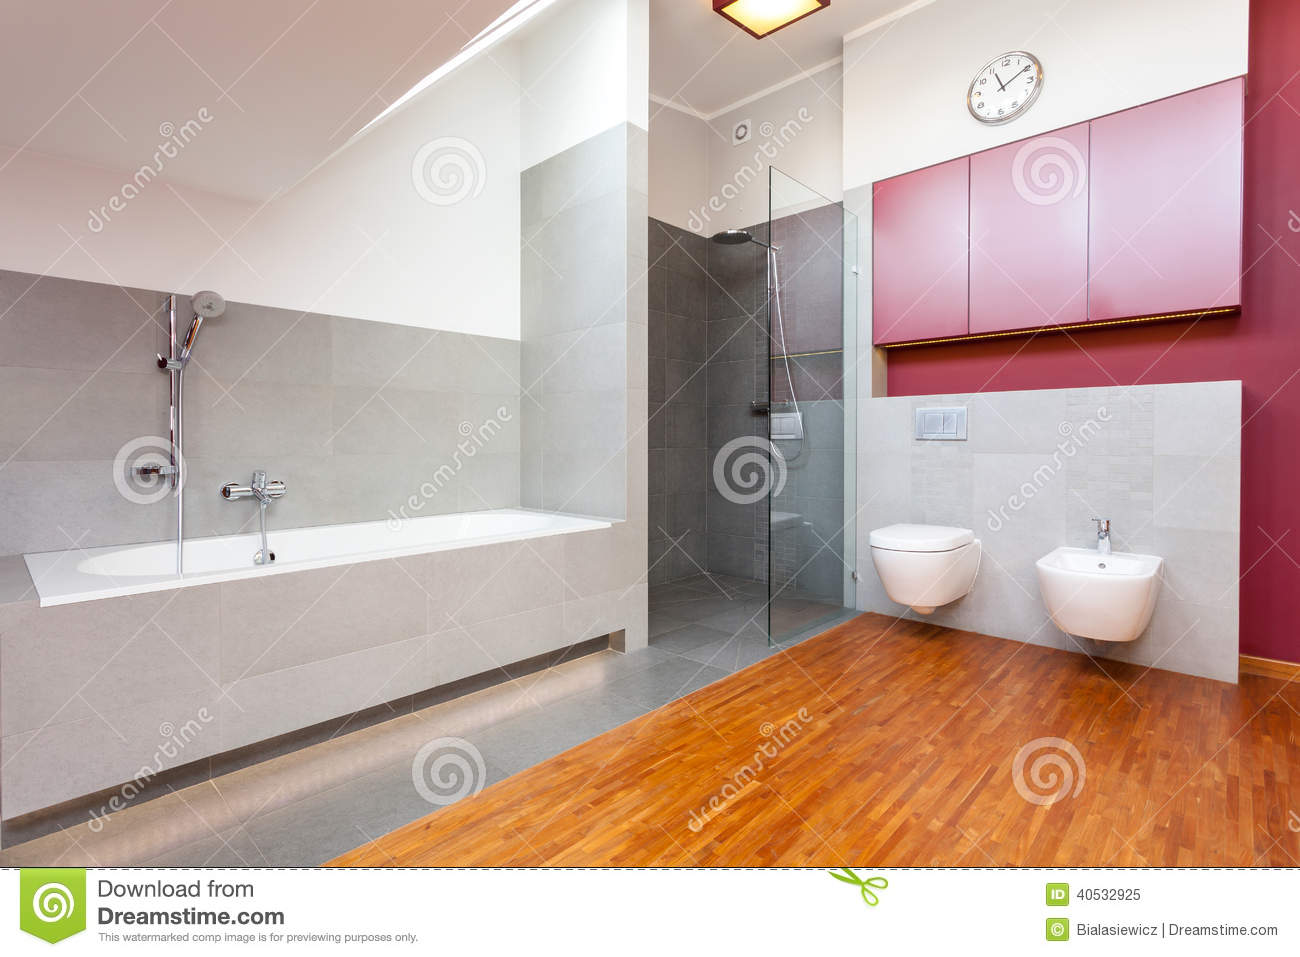 salle de bains moderne rouge et grise image stock image du tage patrimoine 40532925. Black Bedroom Furniture Sets. Home Design Ideas